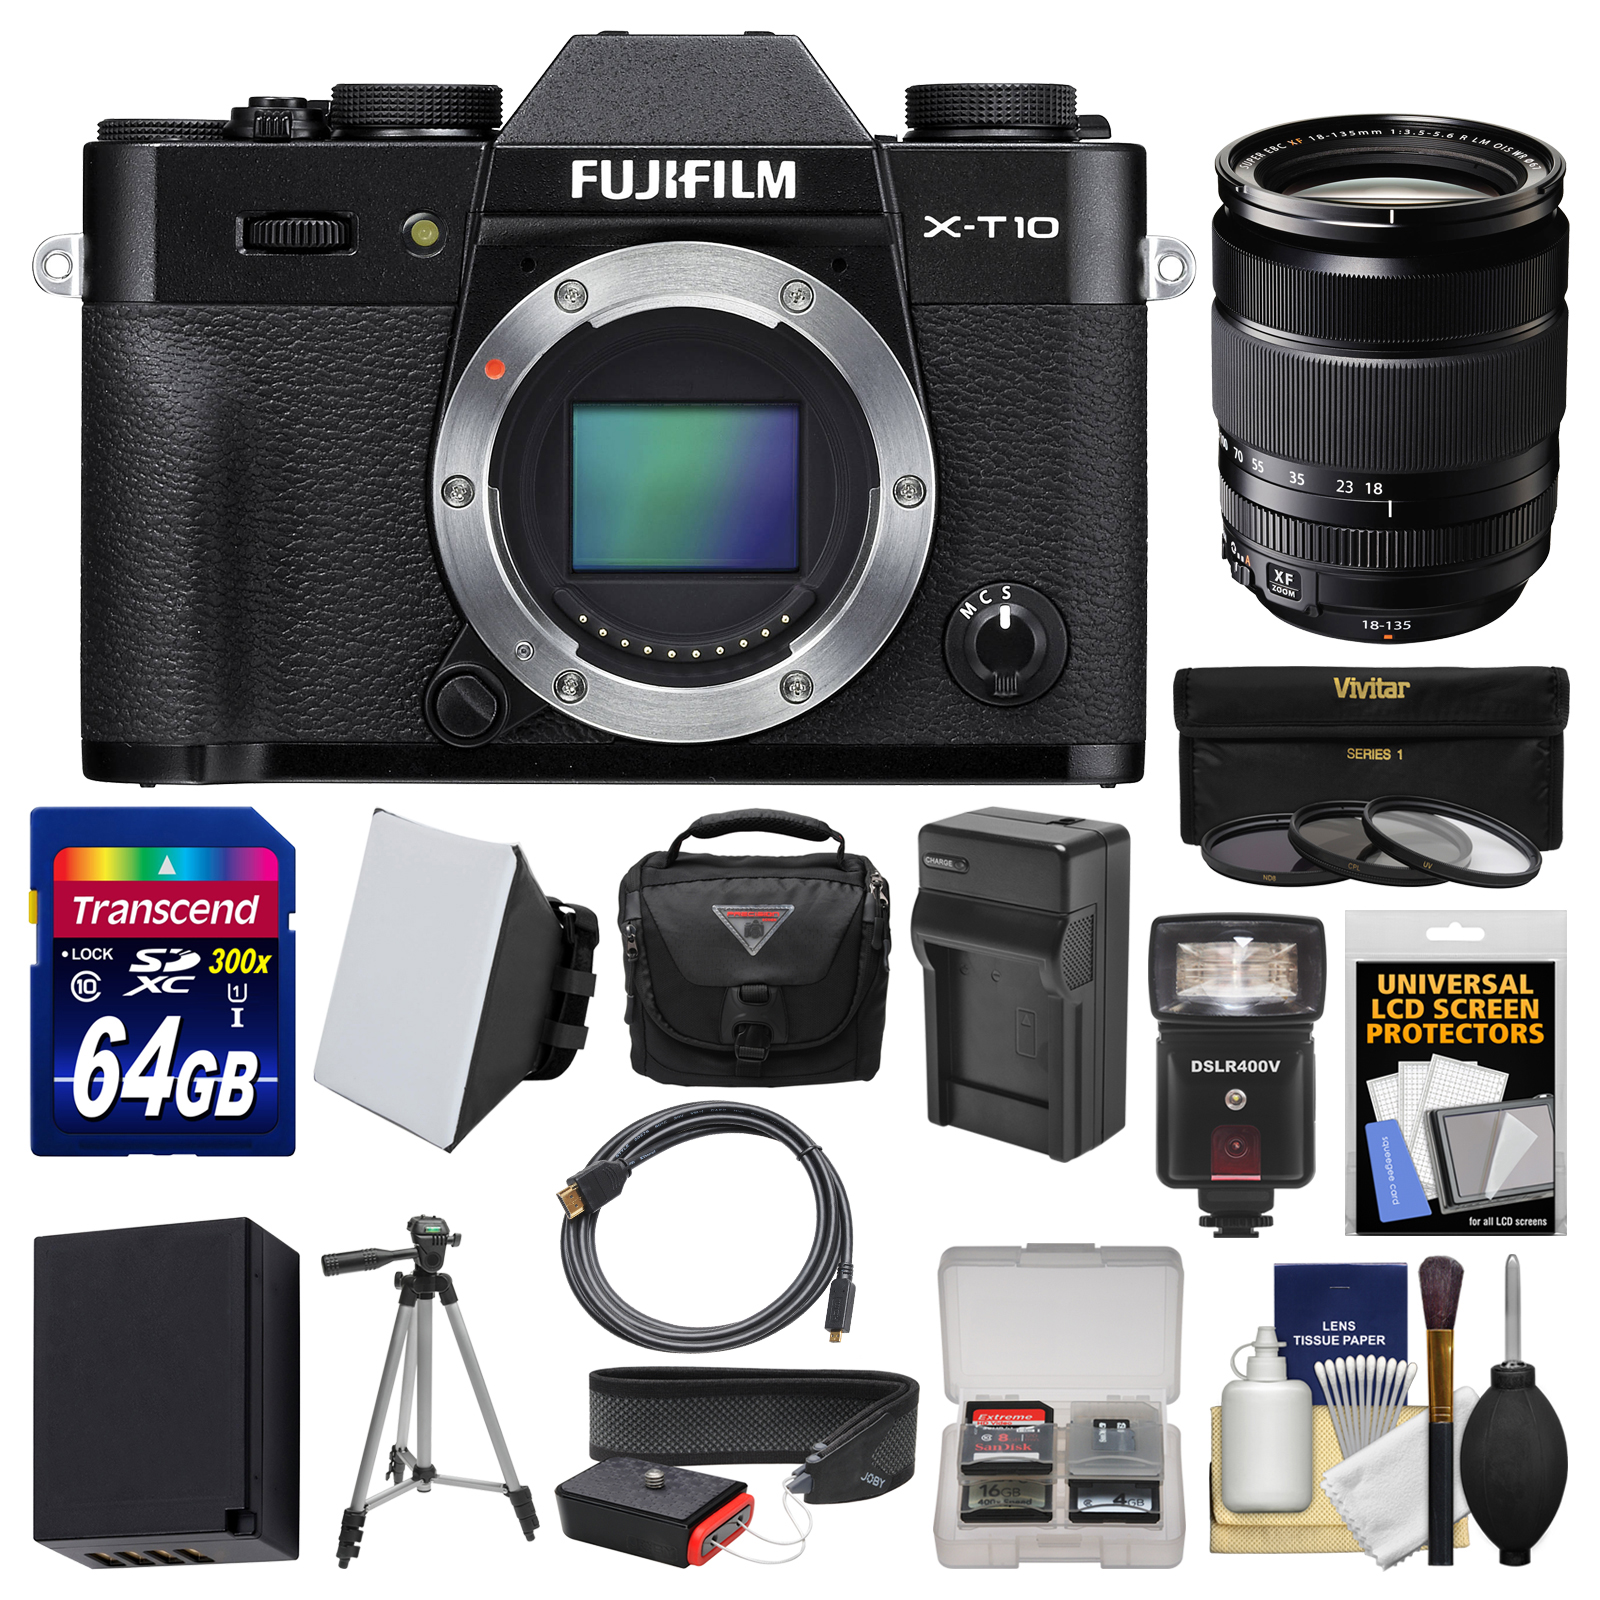 Fujifilm X-T10 Digital Camera Body (Black) & 18-135mm Lens with 64GB Card + Case + Flash + Soft Box + Battery & Charger + Kit